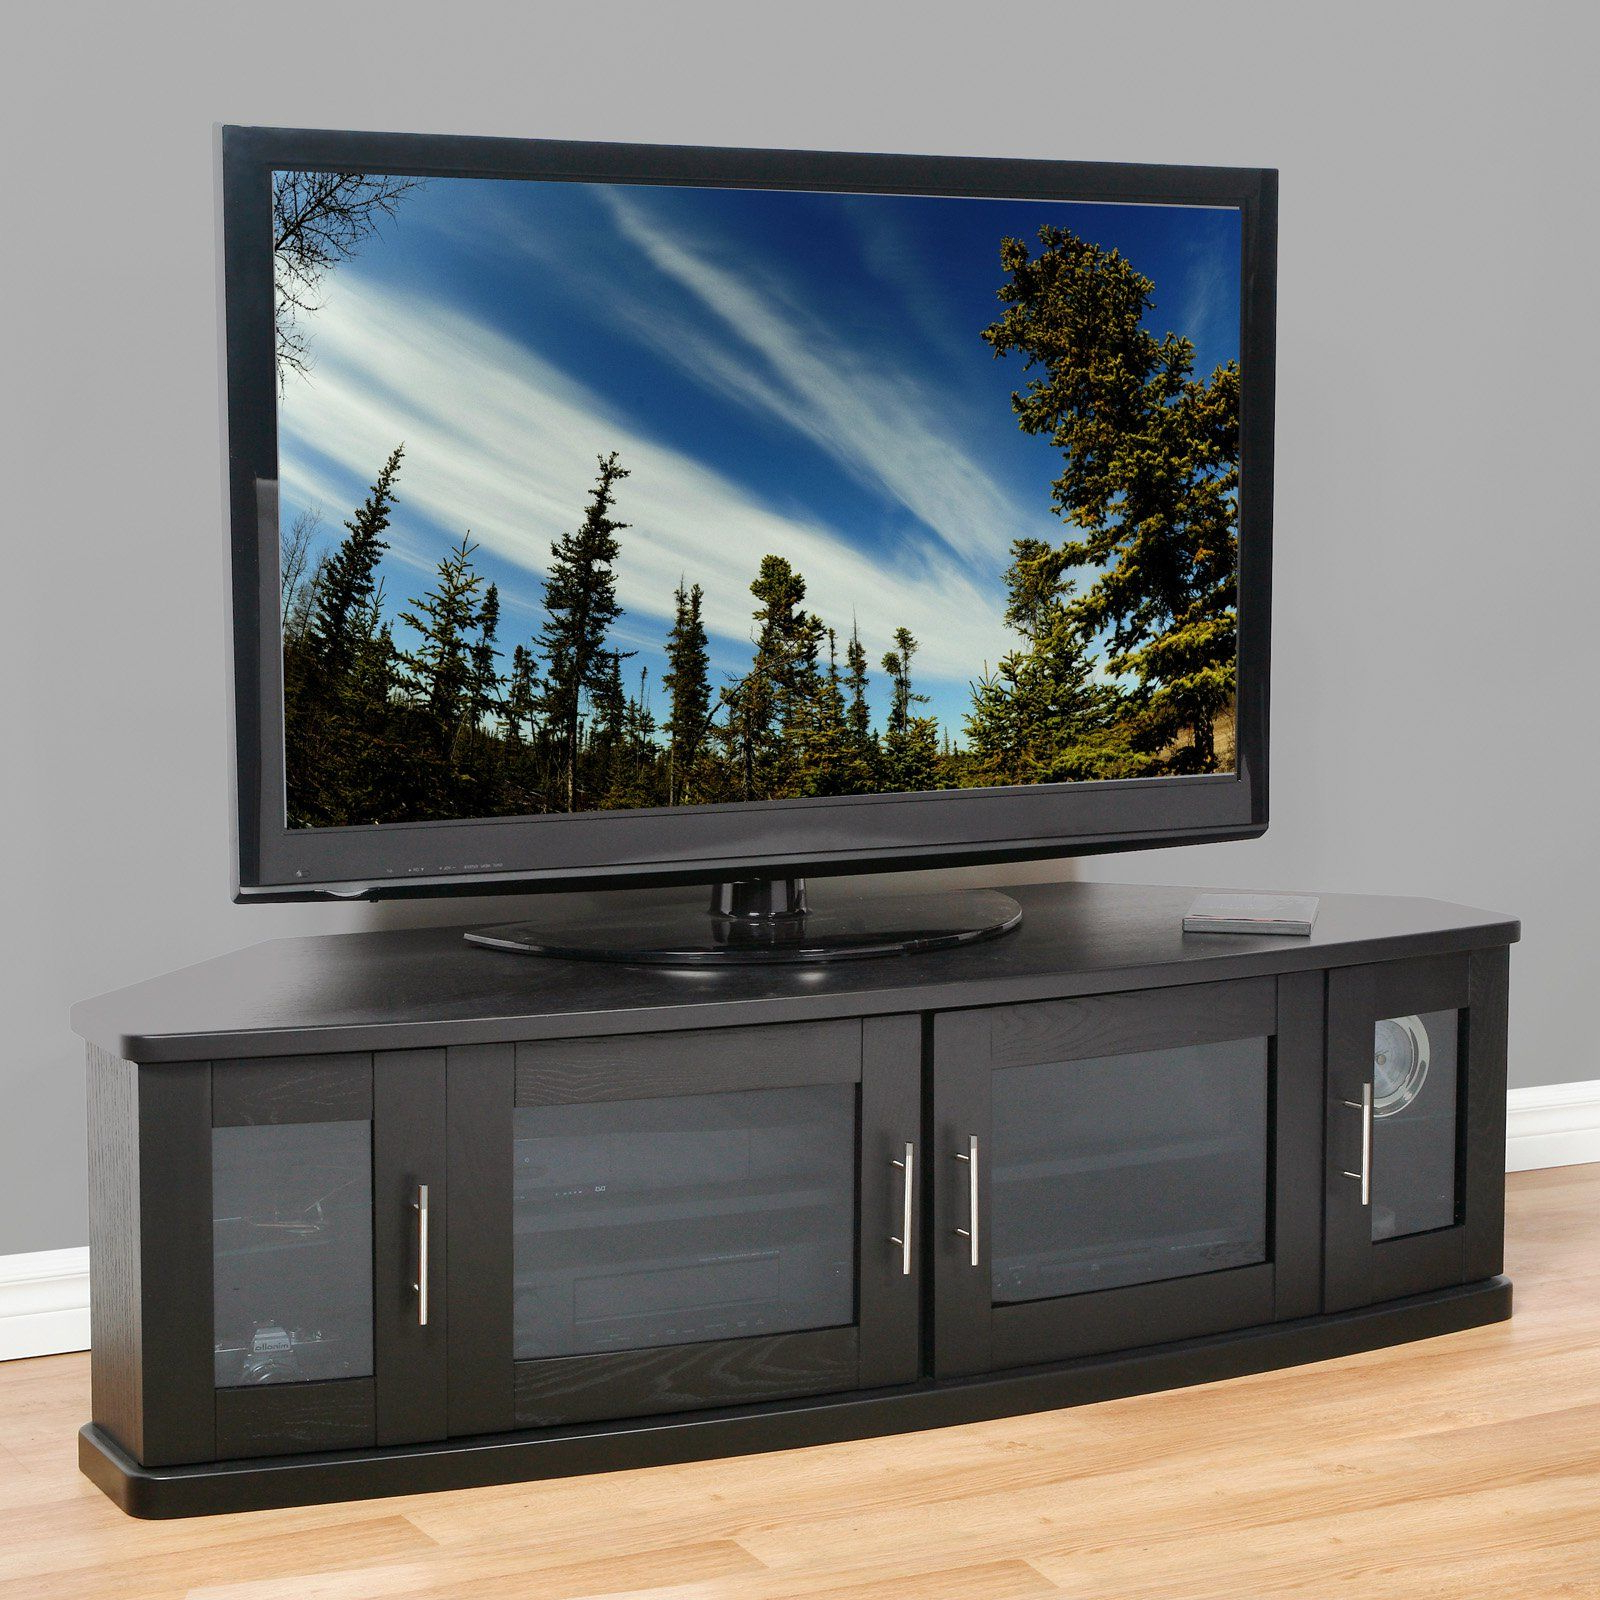 20 Most Stylish Rustic And Modern Tv Stand Ideas (View 1 of 20)